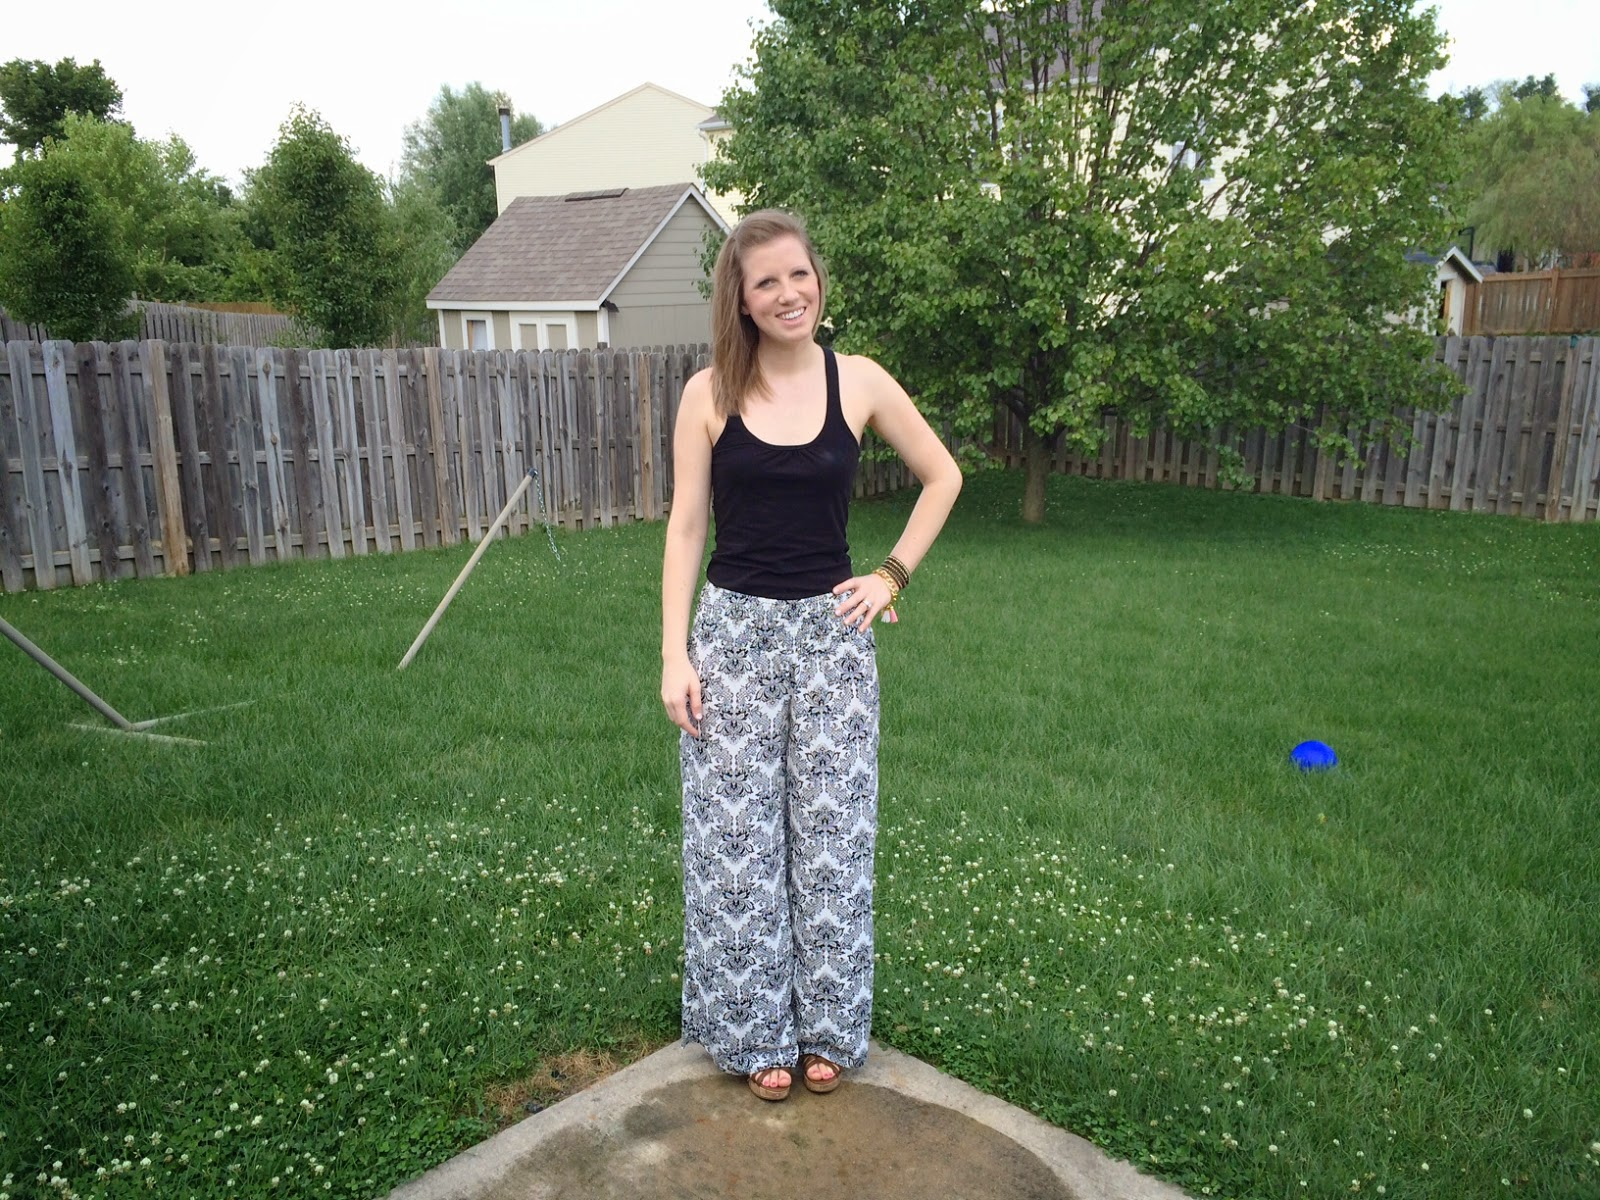 Black and White Outfit Of The Day - Palazzo Pants